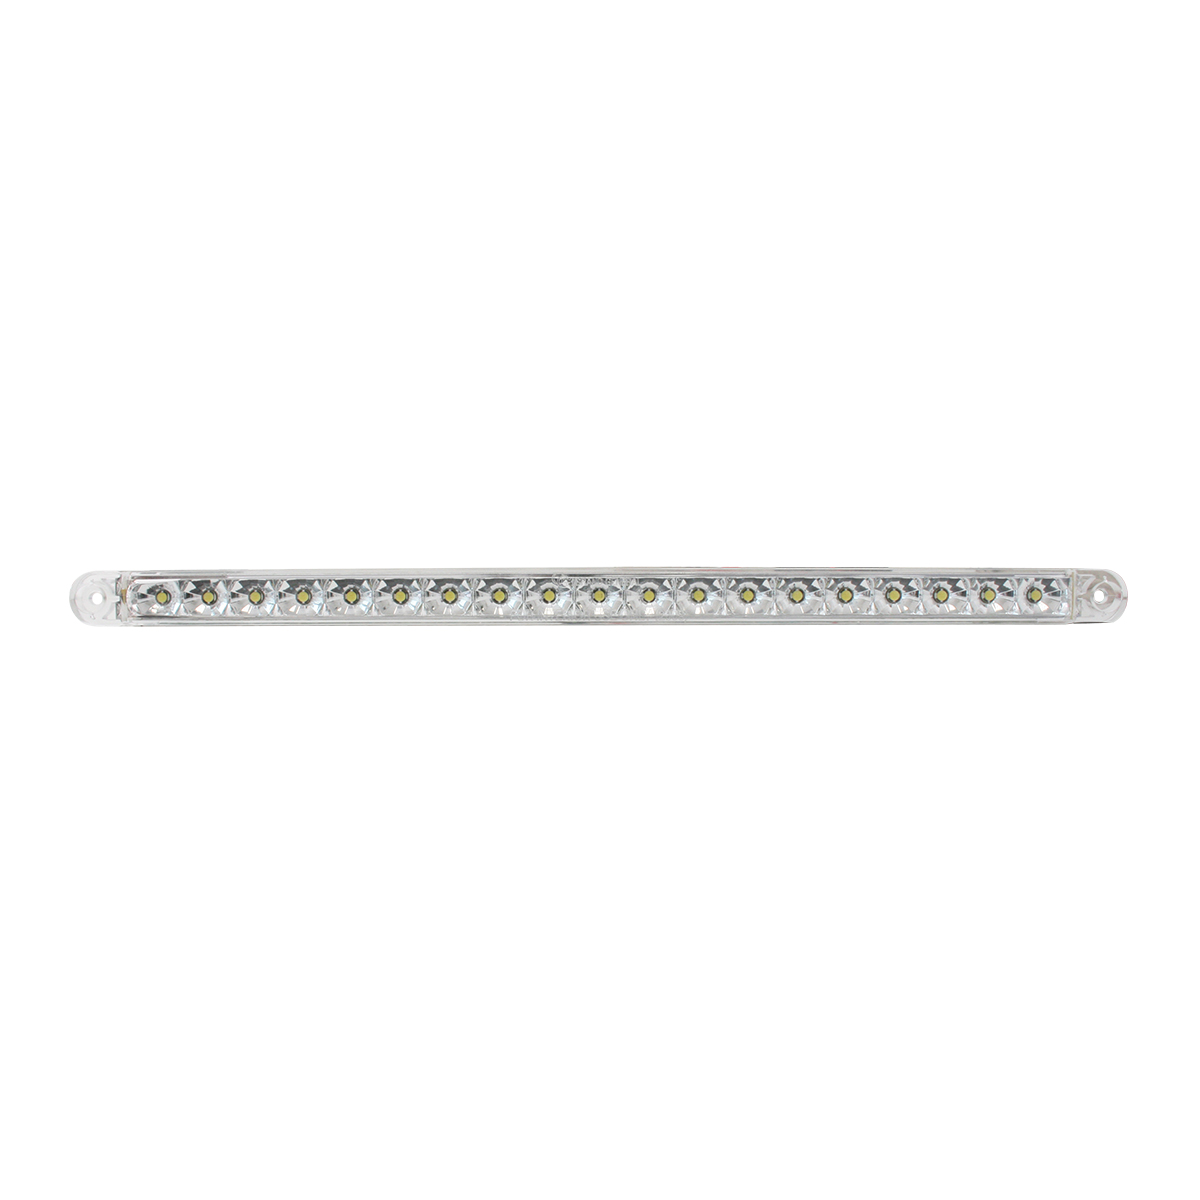 "76387 12"" Flush Mount Light Bar"